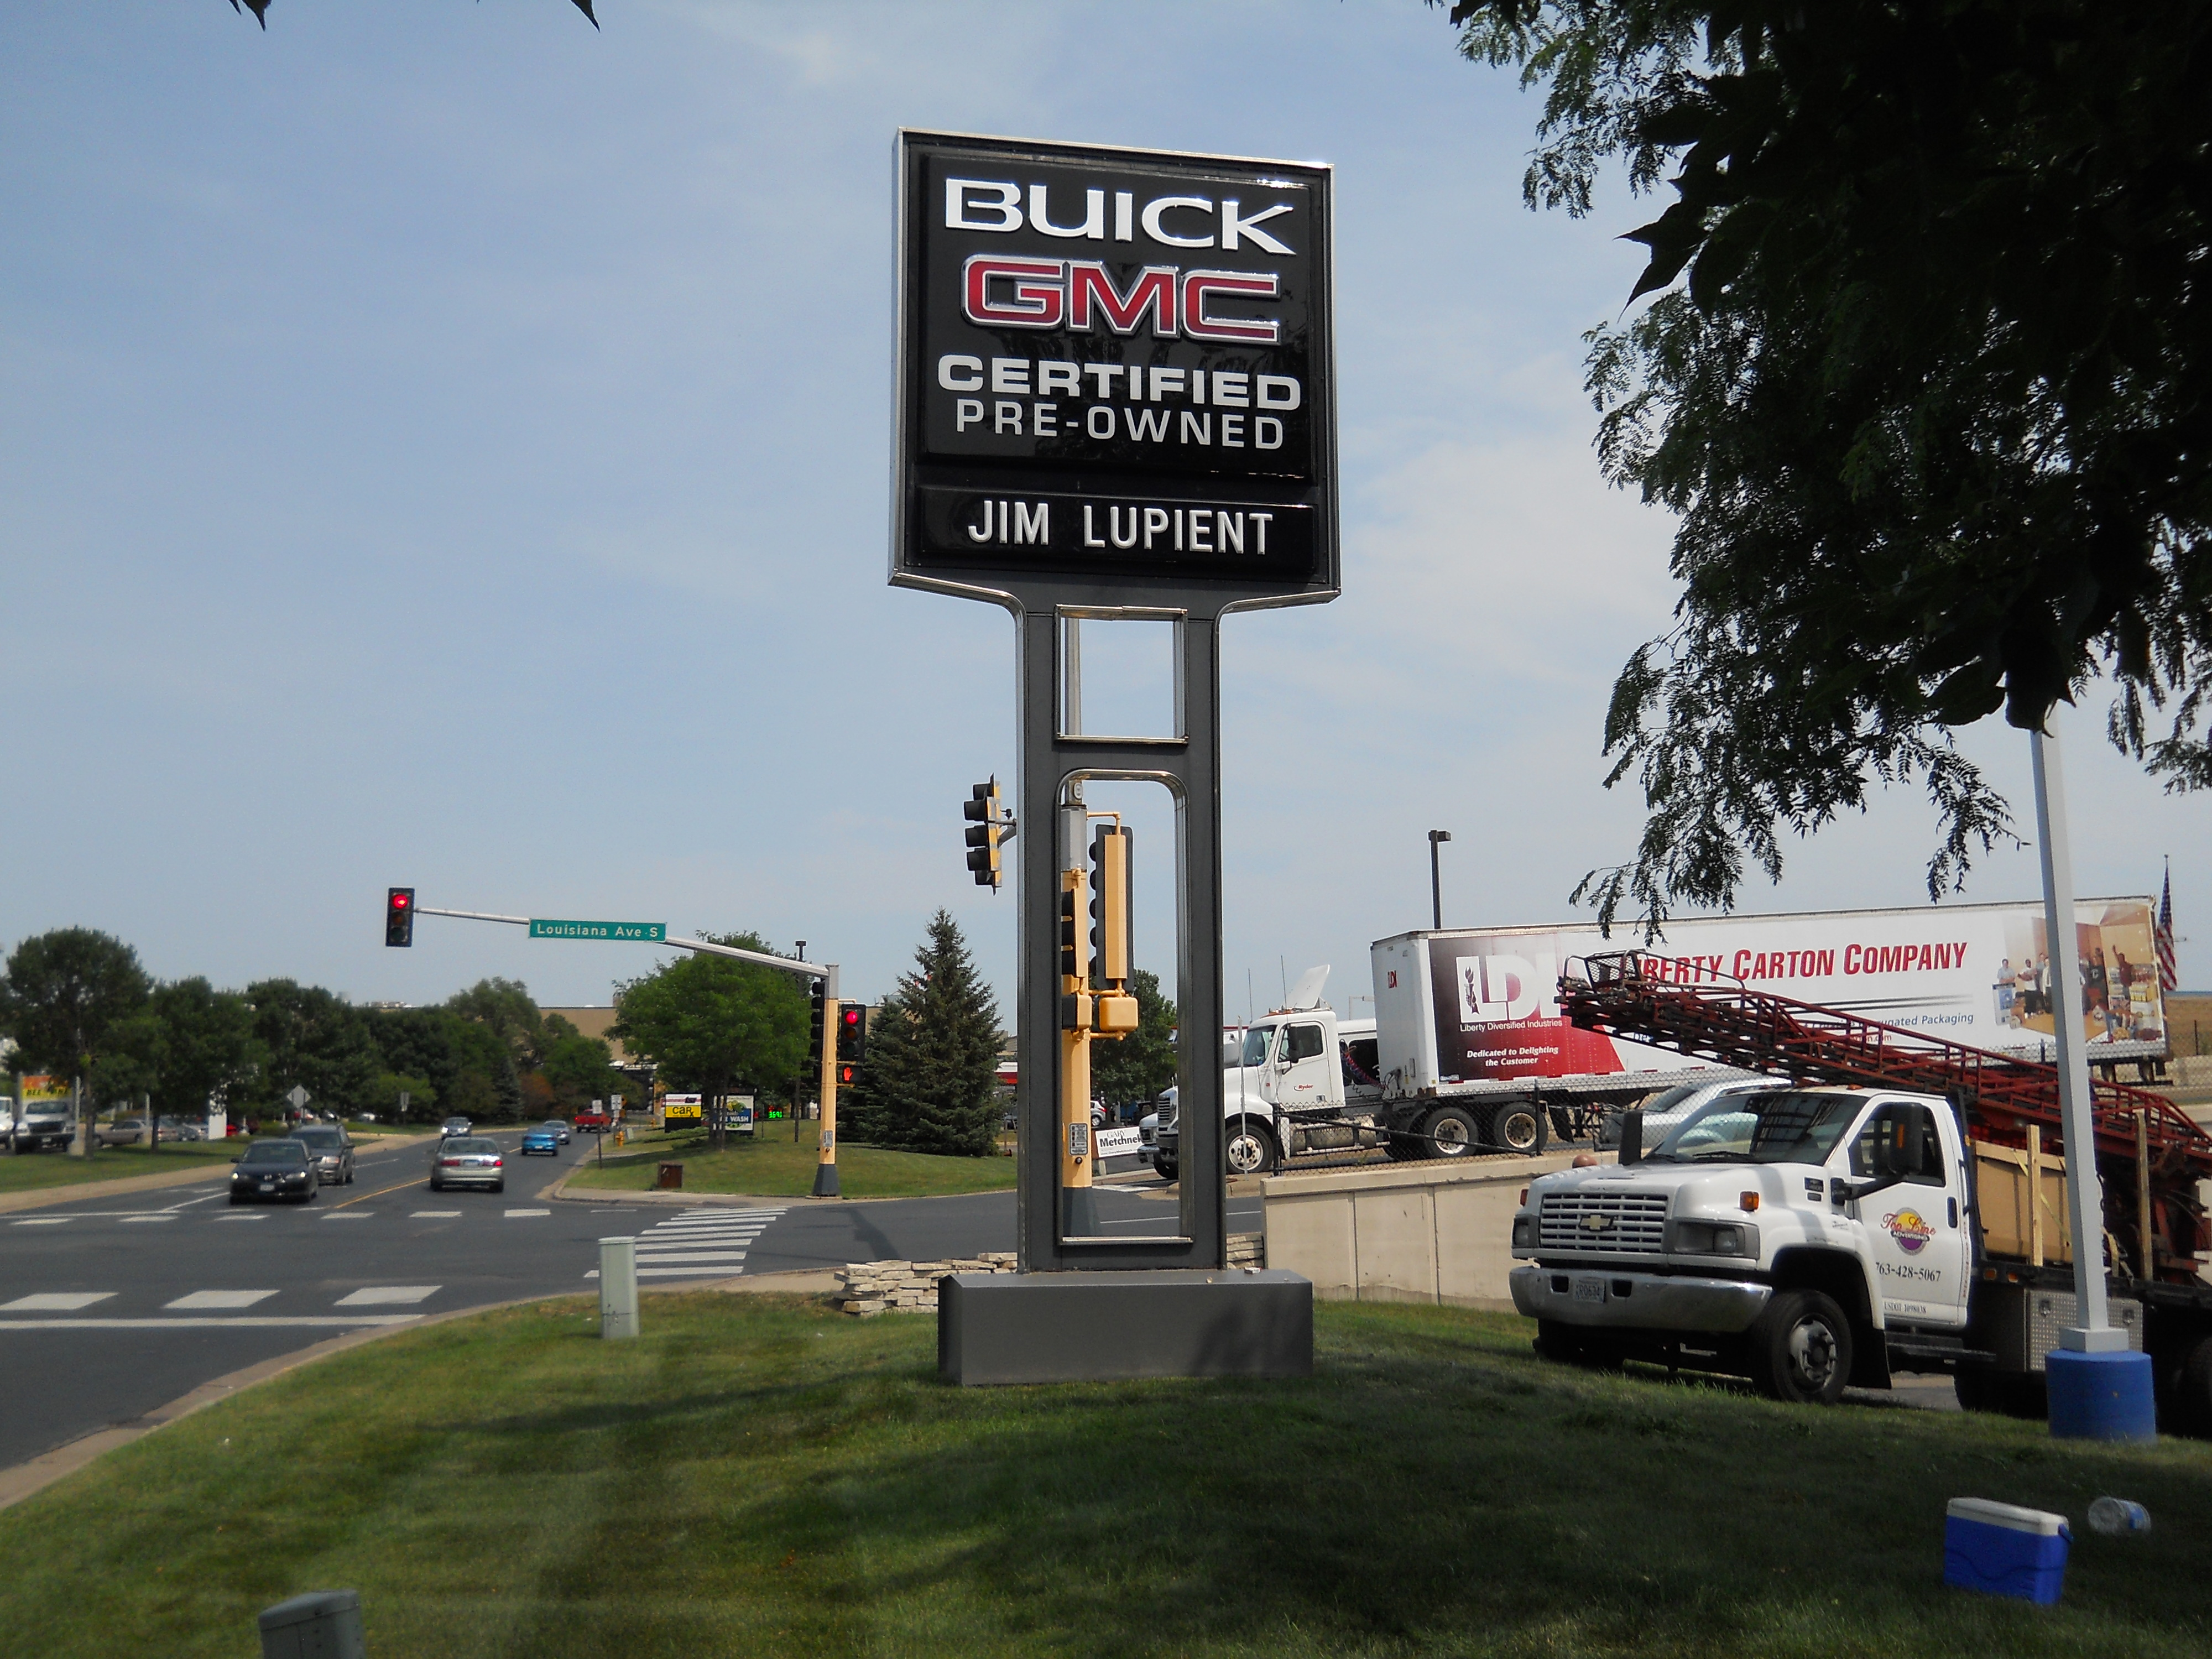 Jim Lupient Buick GMC Sign